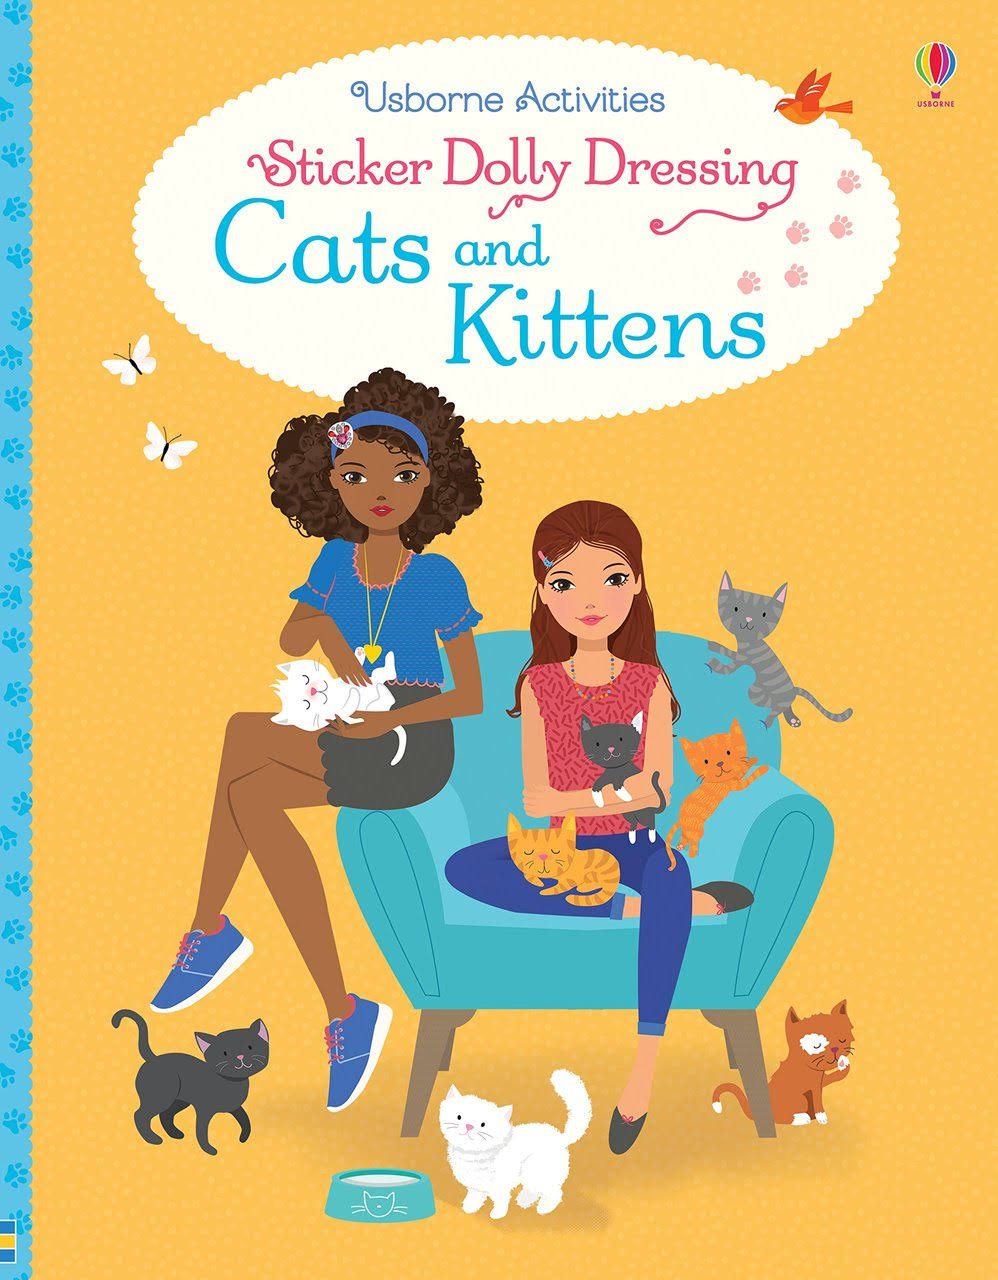 Sticker Dolly Dressing Cats and Kittens [Book]